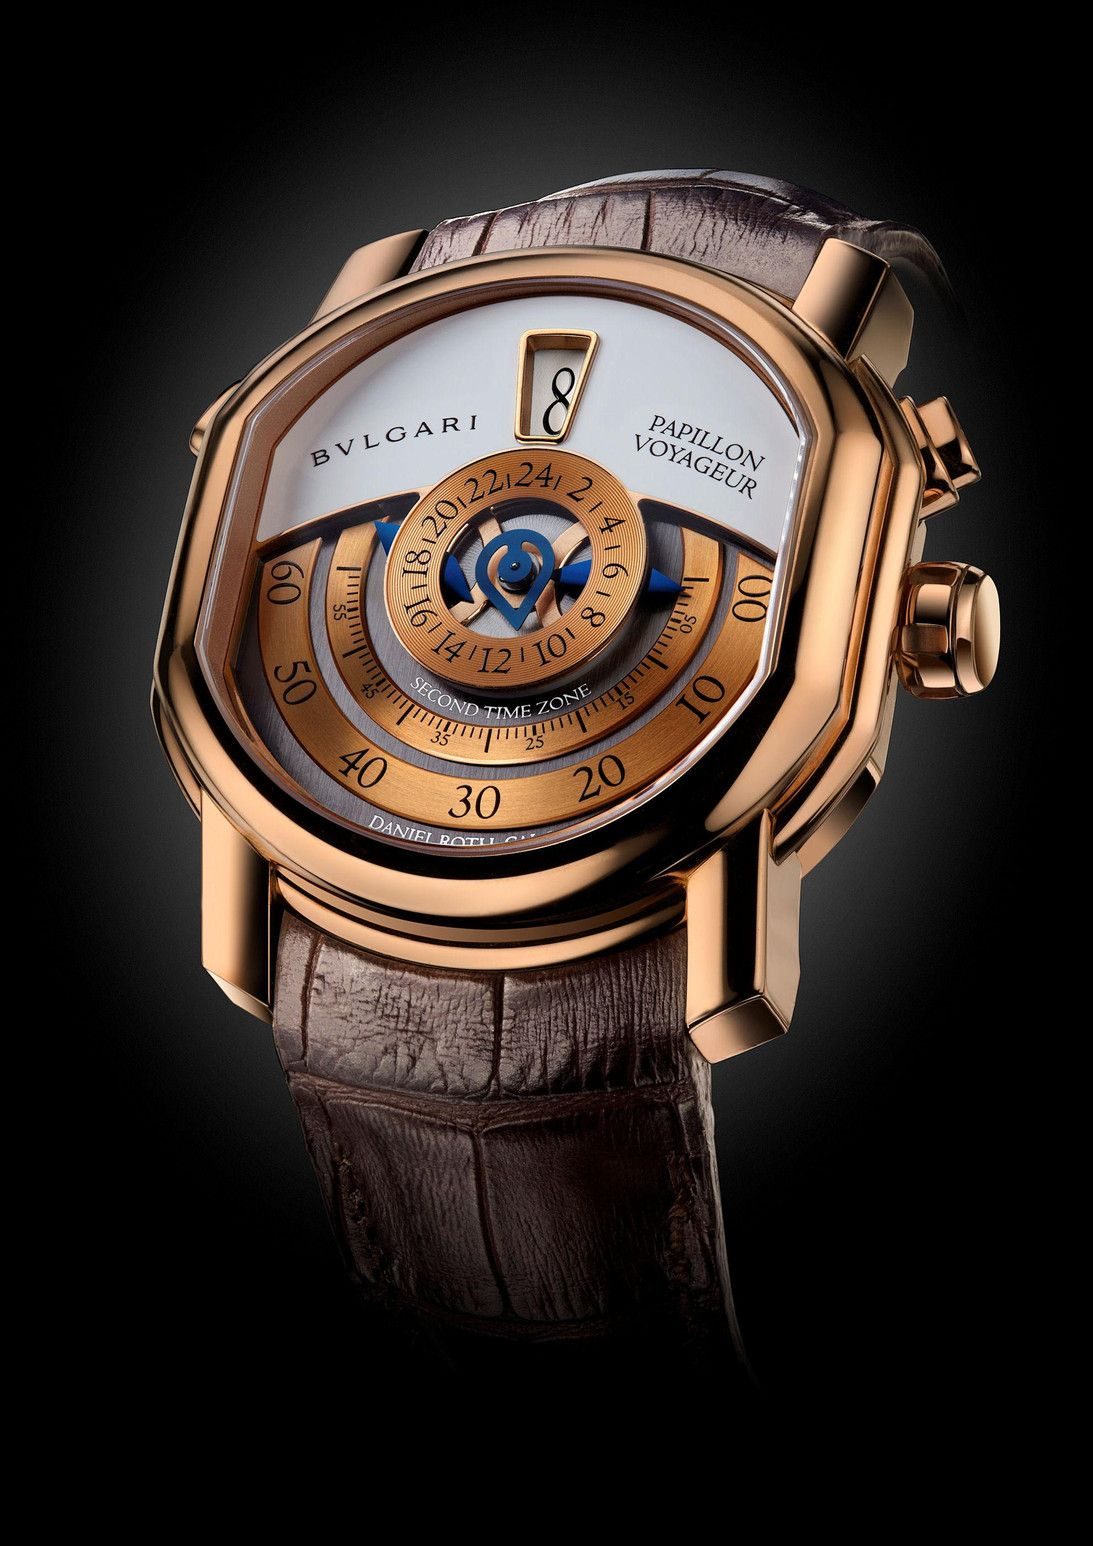 Papillon voyageur bulgari timepieces and luxury watches on